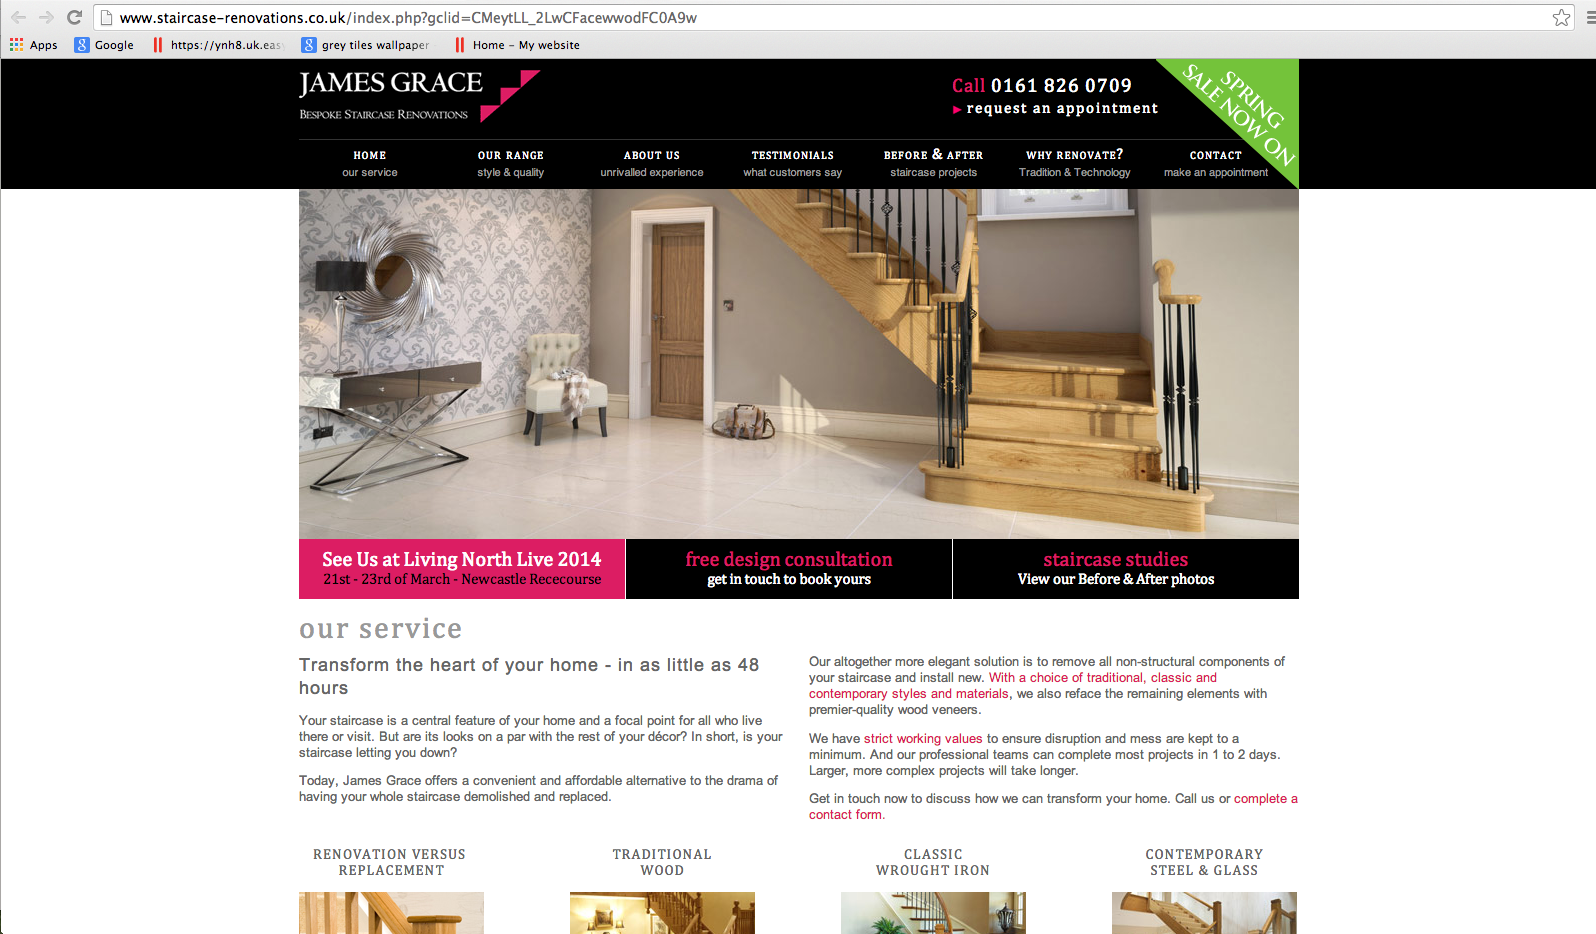 www.Staircase-Renovations.co.uk Website Review